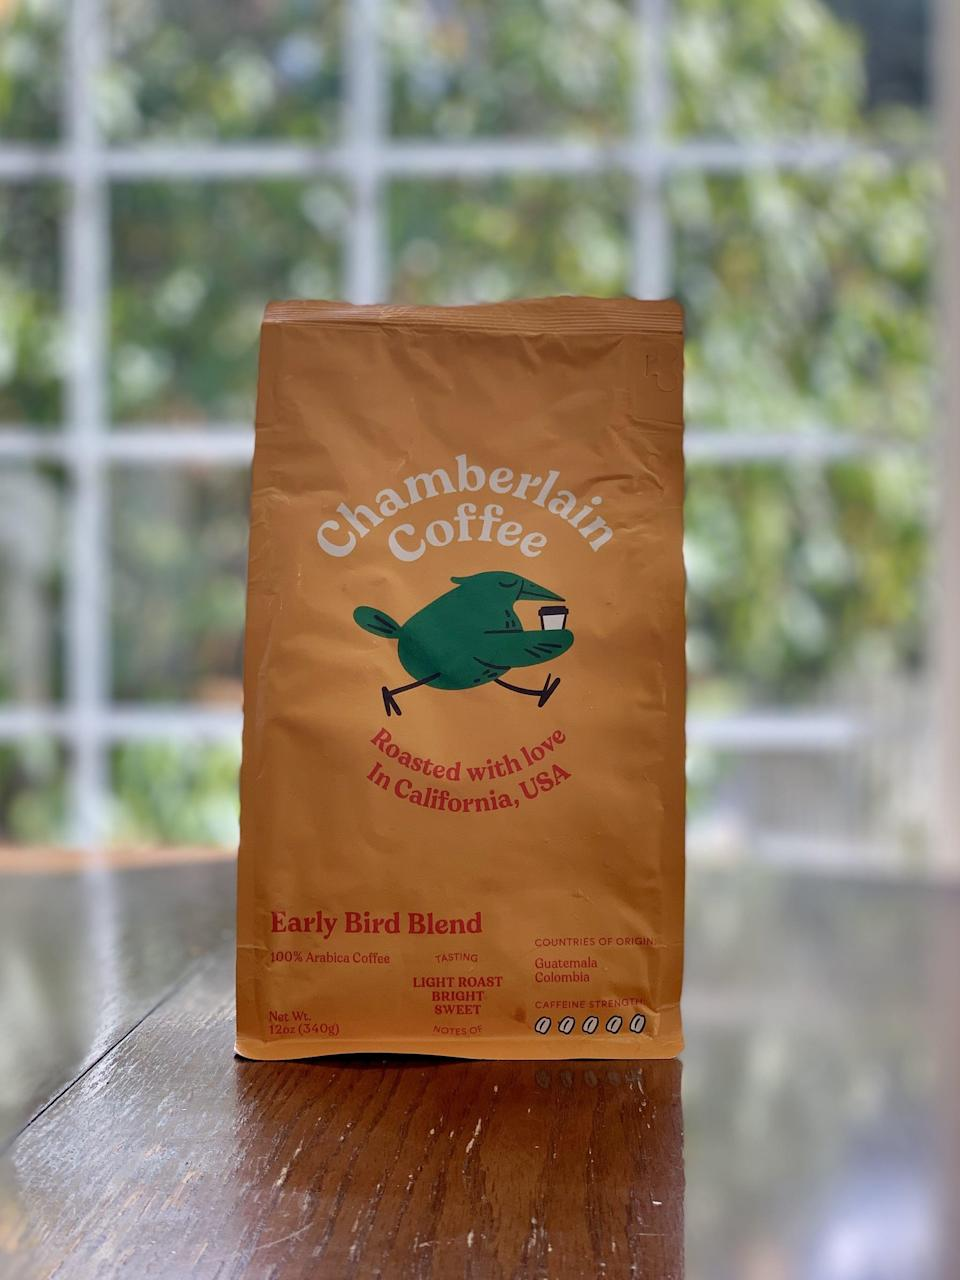 "<p><strong>Basic info:</strong> Light roast described as ""bright"" and ""sweet.""</p> <p>Light roast is not my thing, but if you like tart and tangy coffee, you should by all means give the <a href=""https://chamberlaincoffee.com/products/early-bird-blend-whole-bean"" class=""link rapid-noclick-resp"" rel=""nofollow noopener"" target=""_blank"" data-ylk=""slk:Early Bird Blend"">Early Bird Blend</a> a go! Chamberlain Coffee describes a few of the notes as ""green apple and citrus,"" which is what stuck out to me the most. This one has the most caffeine, in case that's your primary concern!</p>"